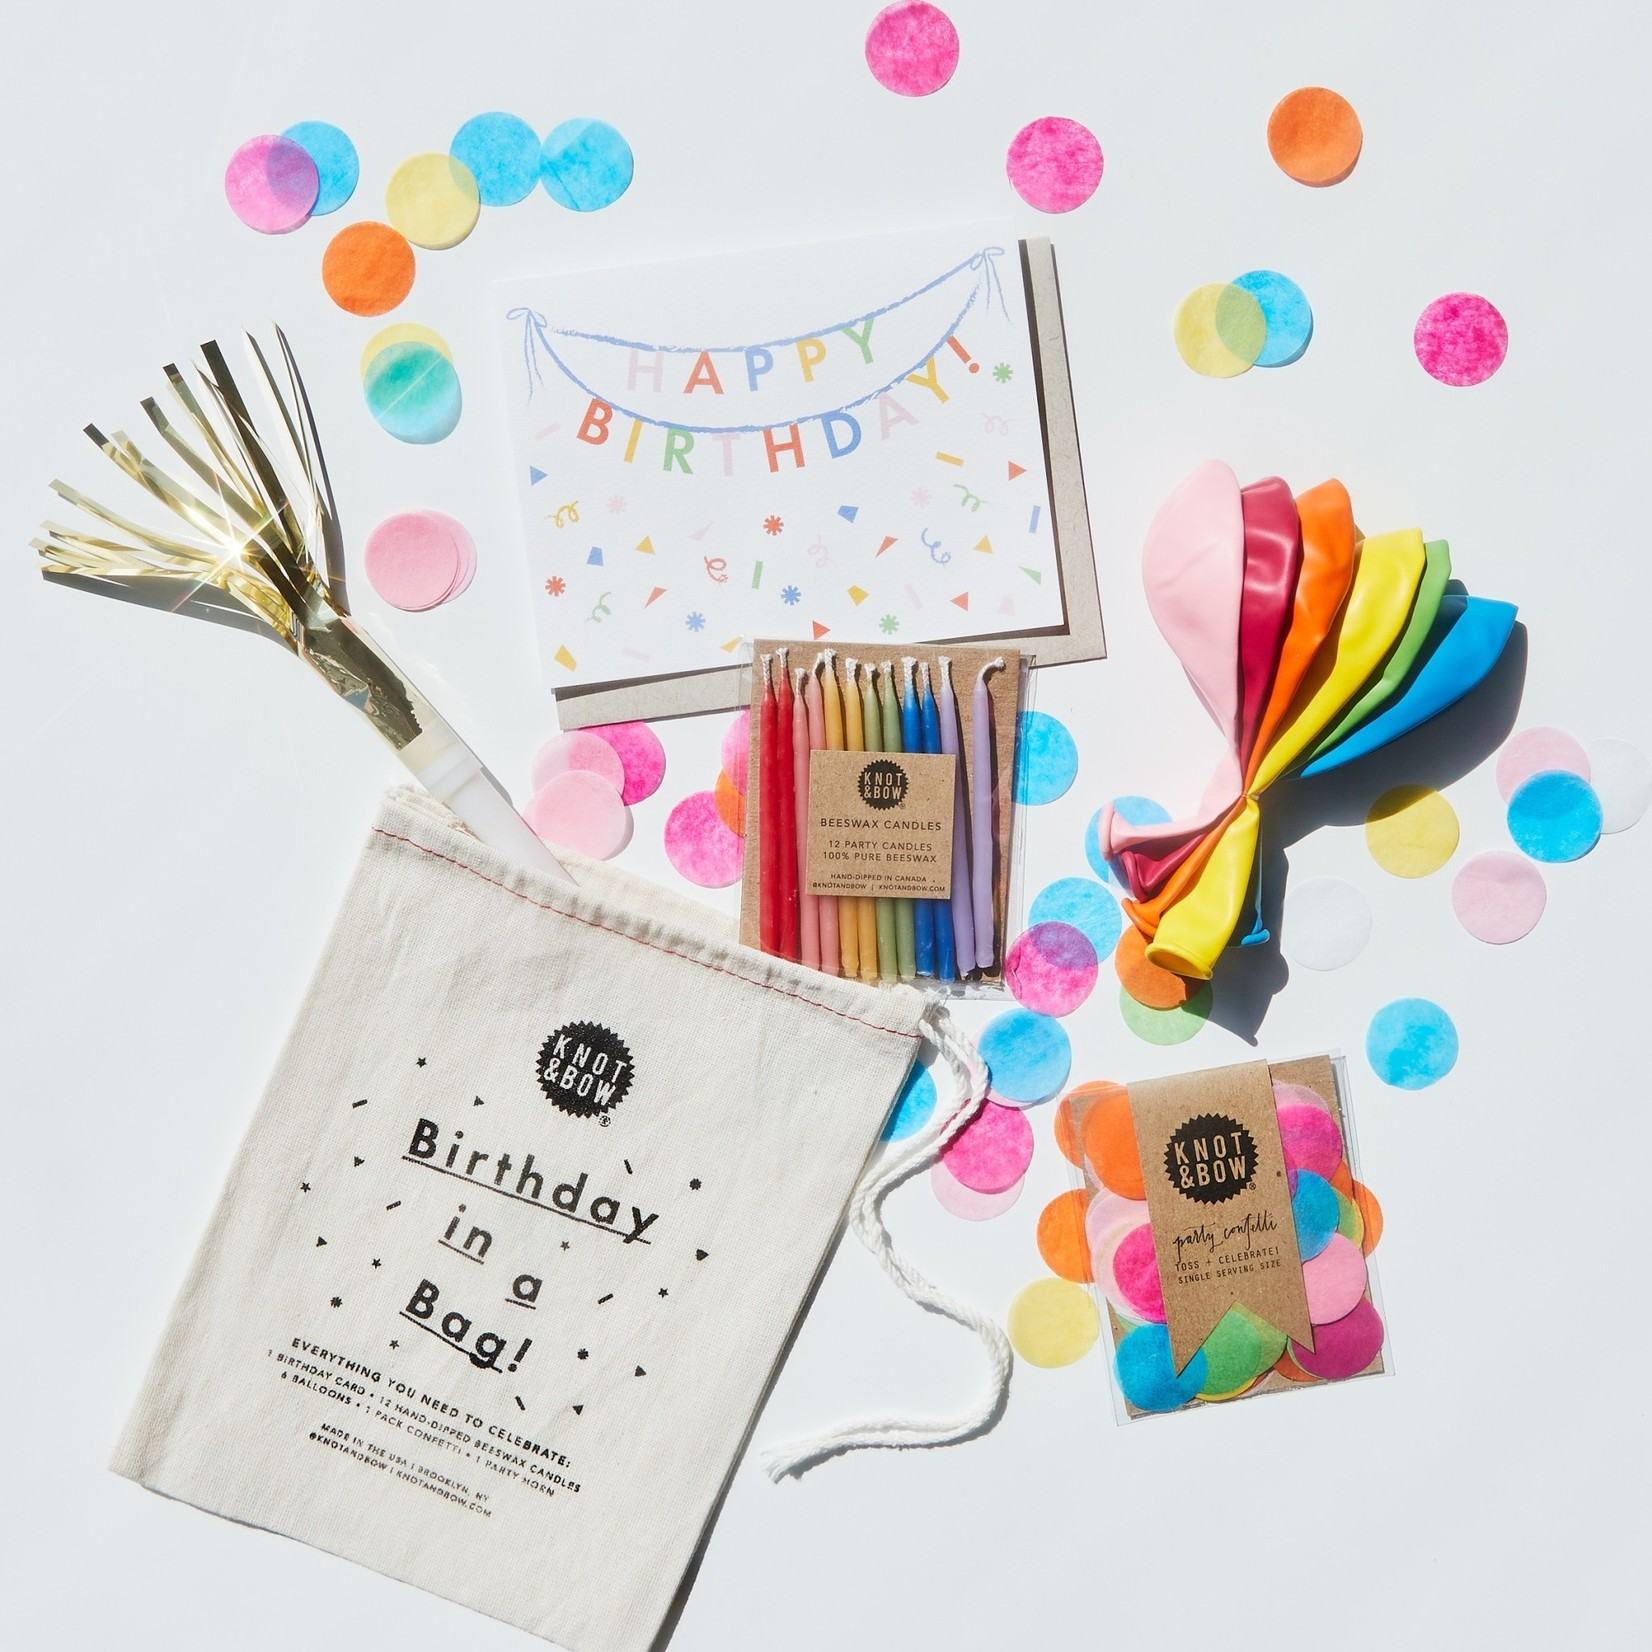 Knot & Bow Knot & Bow Birthday in A Bag